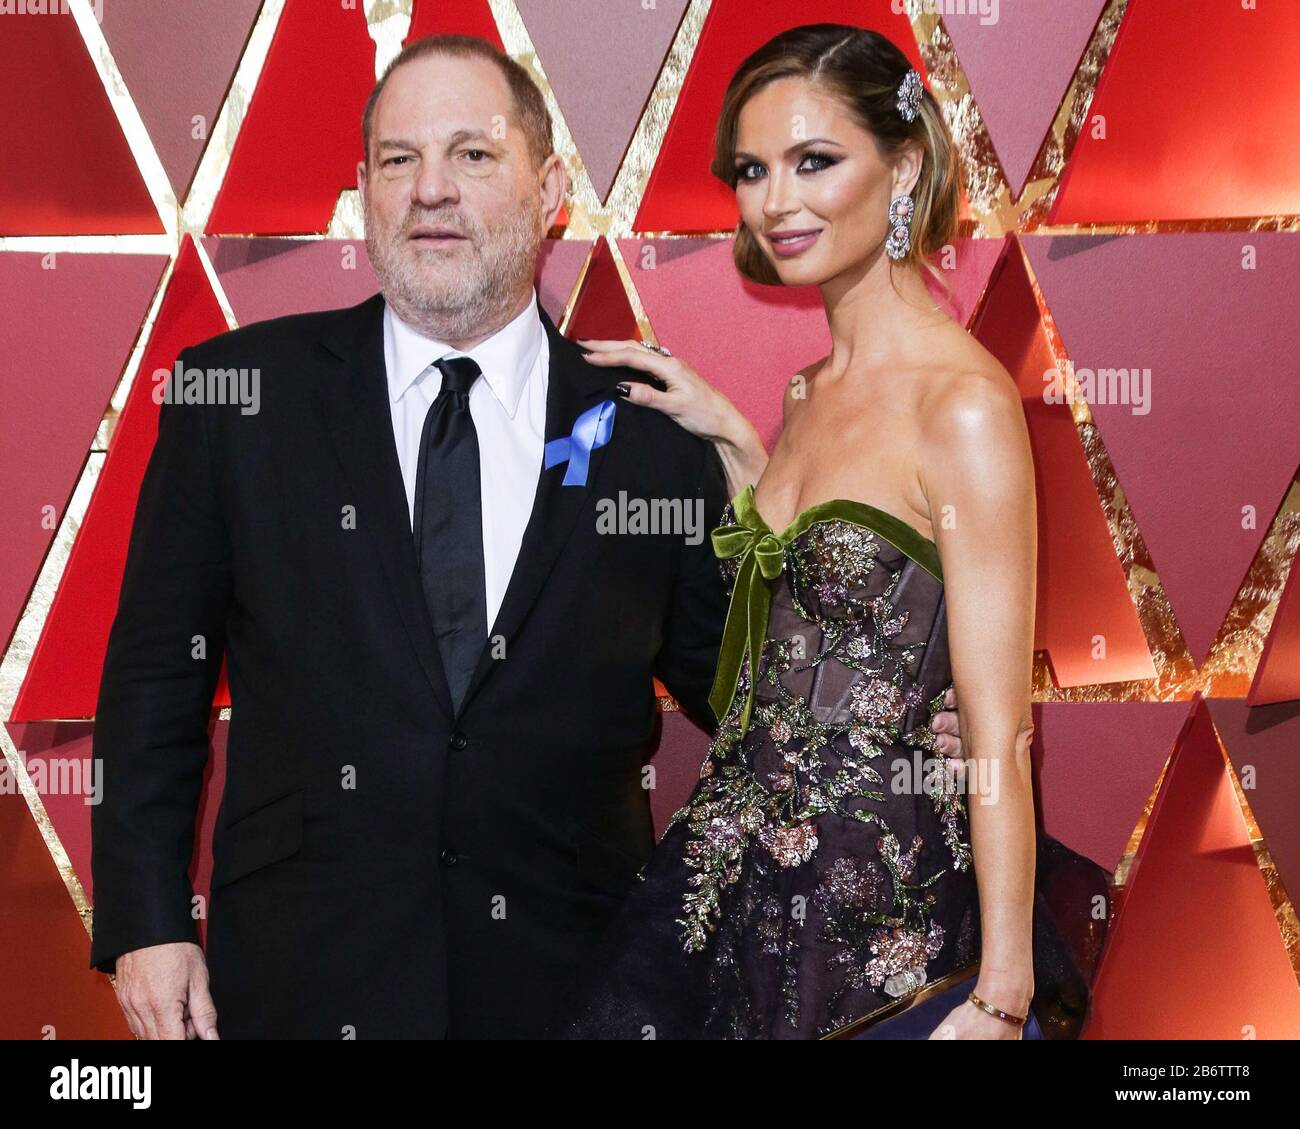 (FILE) 11th Mar 2020. Harvey Weinstein Sentenced to 23 Years in Prison. Harvey Weinstein will spend 23 years in a New York State prison after being sentenced by Supreme Court Judge James Burke on the morning of Wednesday, March 11, 2020. In pic: HOLLYWOOD, LOS ANGELES, CALIFORNIA, USA - FEBRUARY 26: Harvey Weinstein and wife/fashion designer Georgina Chapman arrive at the 89th Annual Academy Awards held at the Hollywood and Highland Center on February 26, 2017 in Hollywood, Los Angeles, California, United States. (Photo by Image Press Agency) Credit: Image Press Agency/Alamy Live News Stock Photo